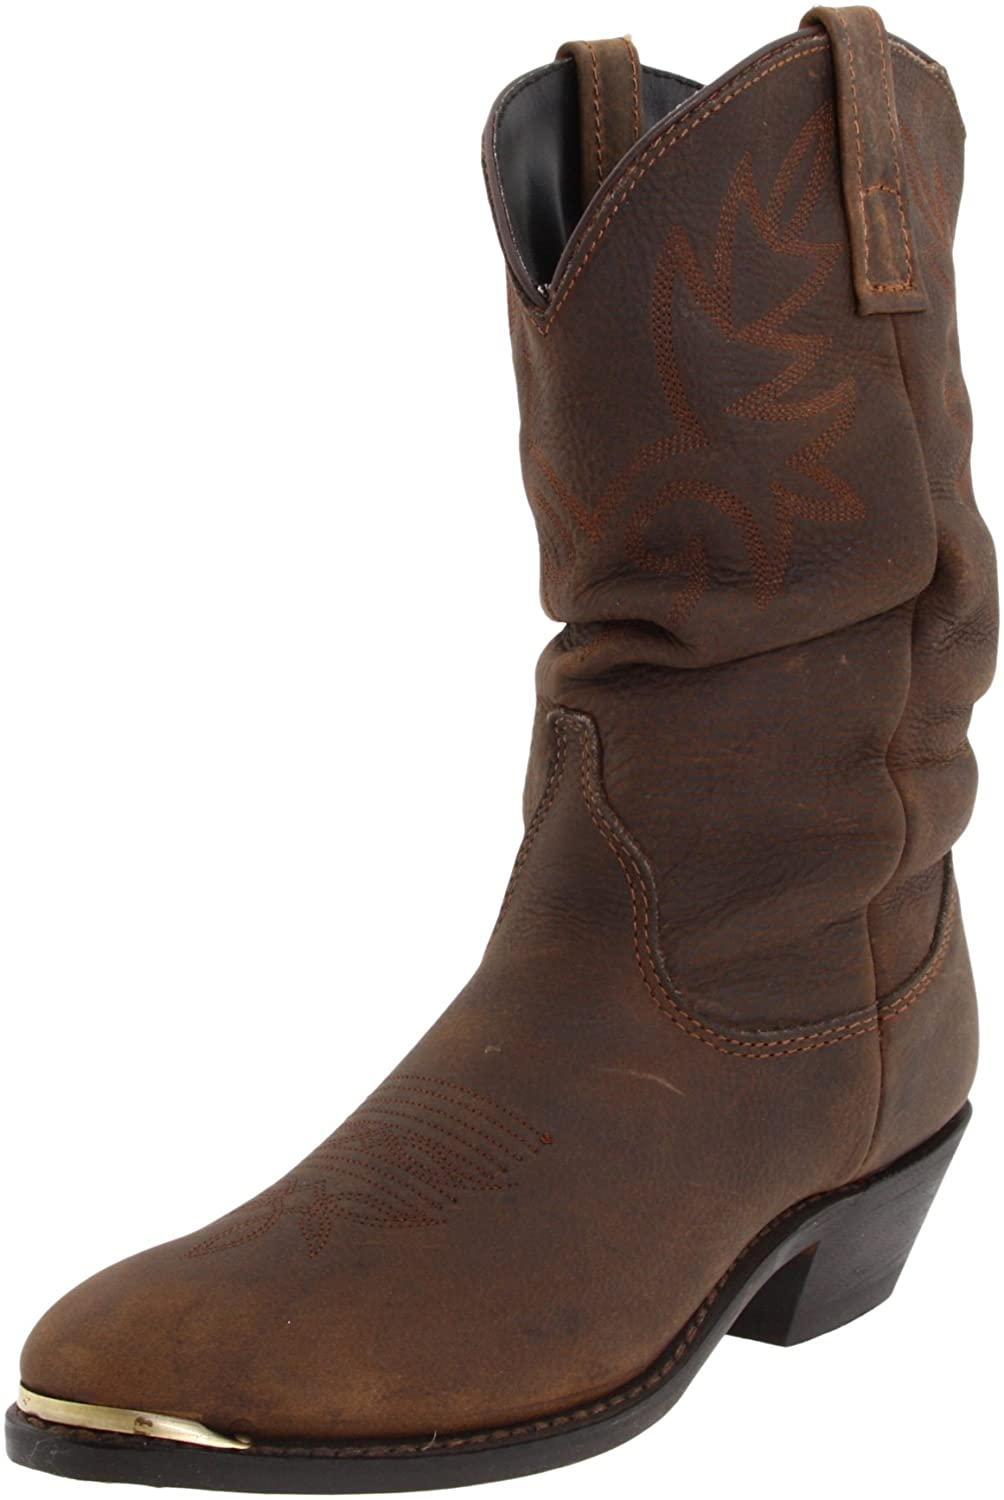 Dingo Women's Marlee Boot US|Golden B003UYMXOO 10 D US|Golden Boot Condor a2a2b5